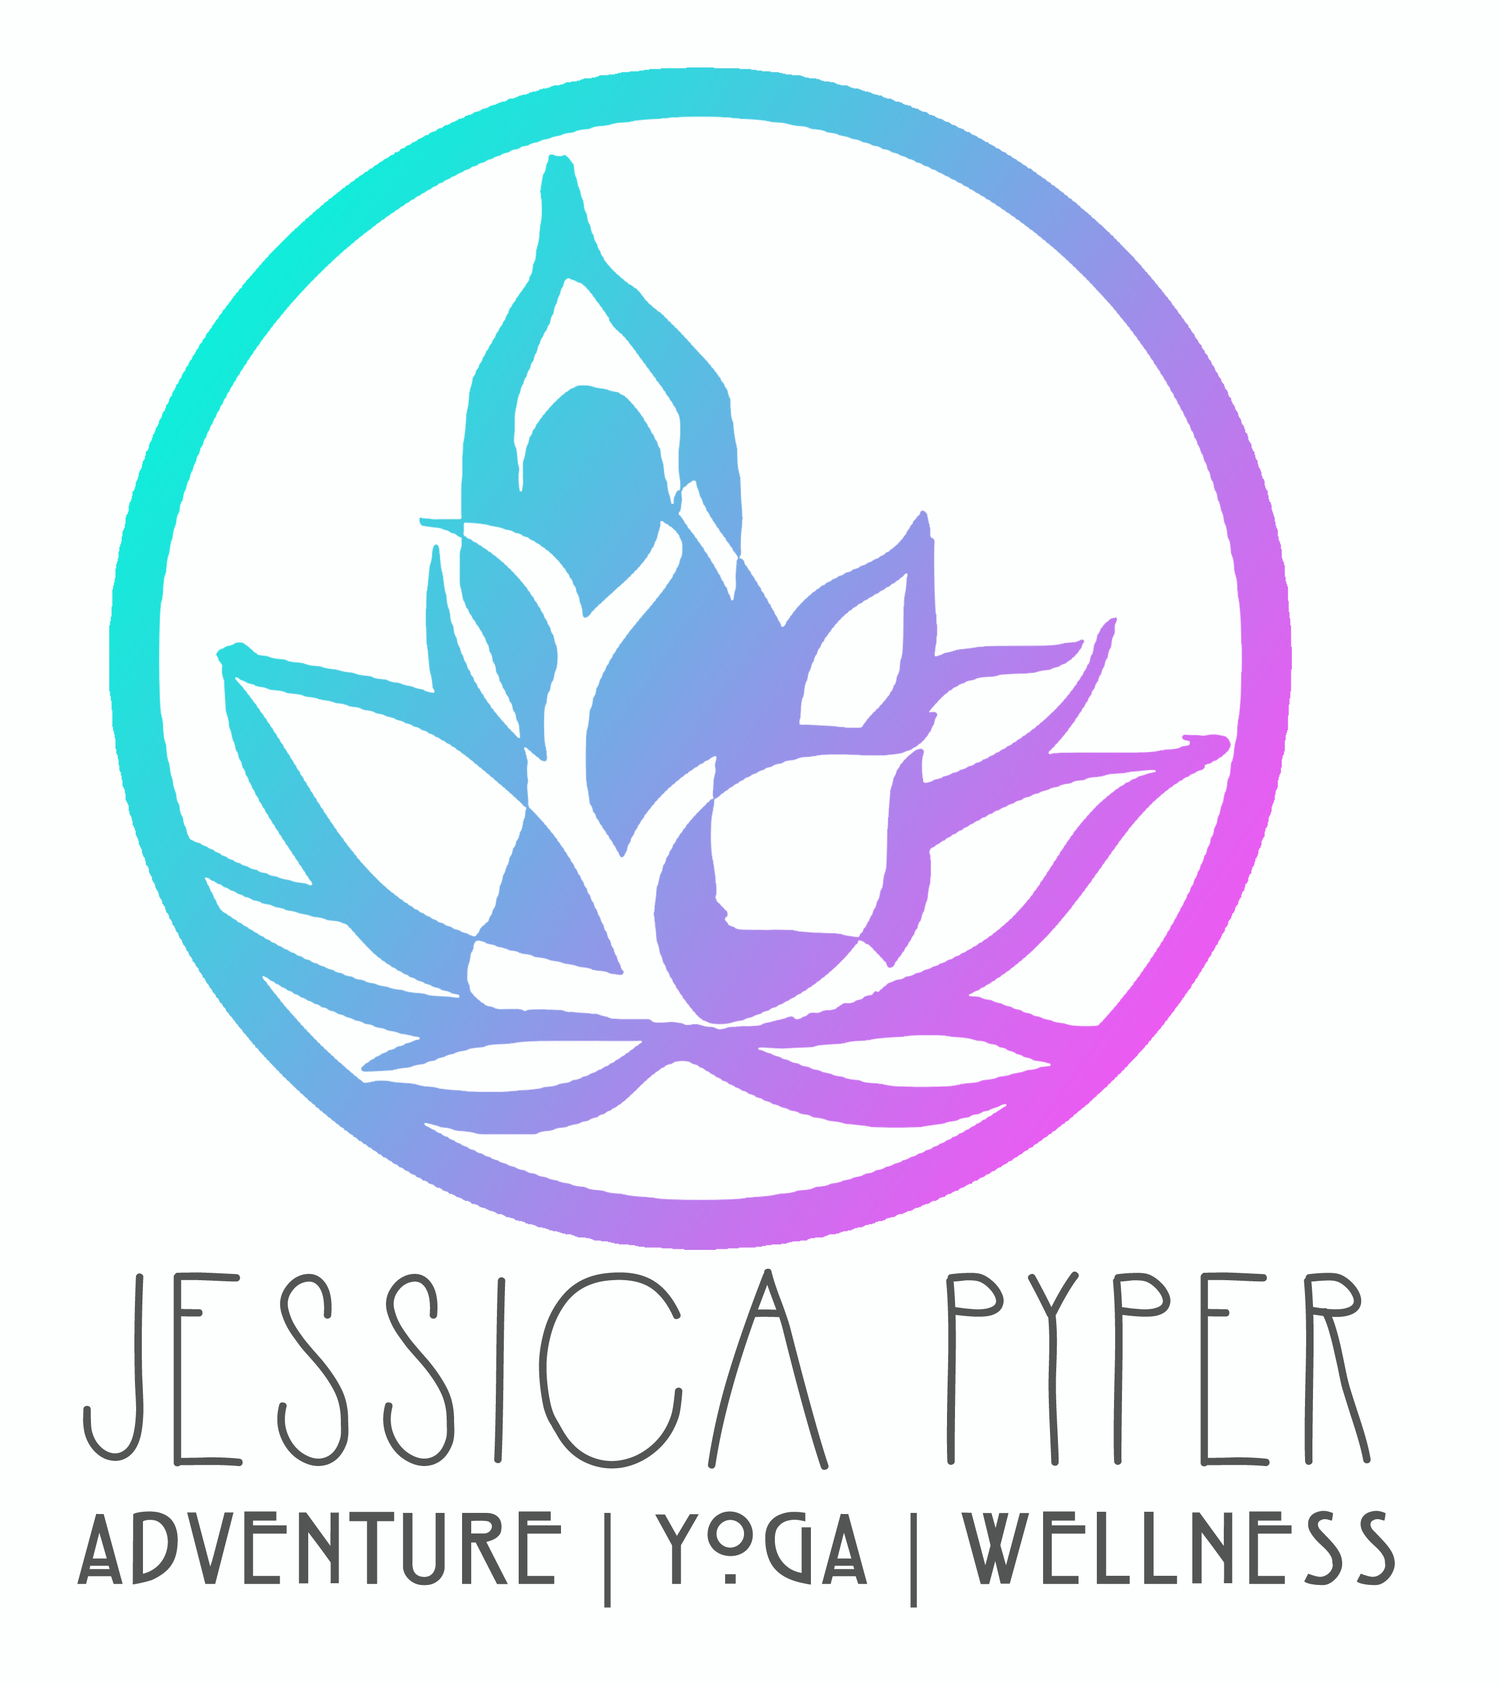 Jessica Pyper | Yoga, Wellness, Adventure